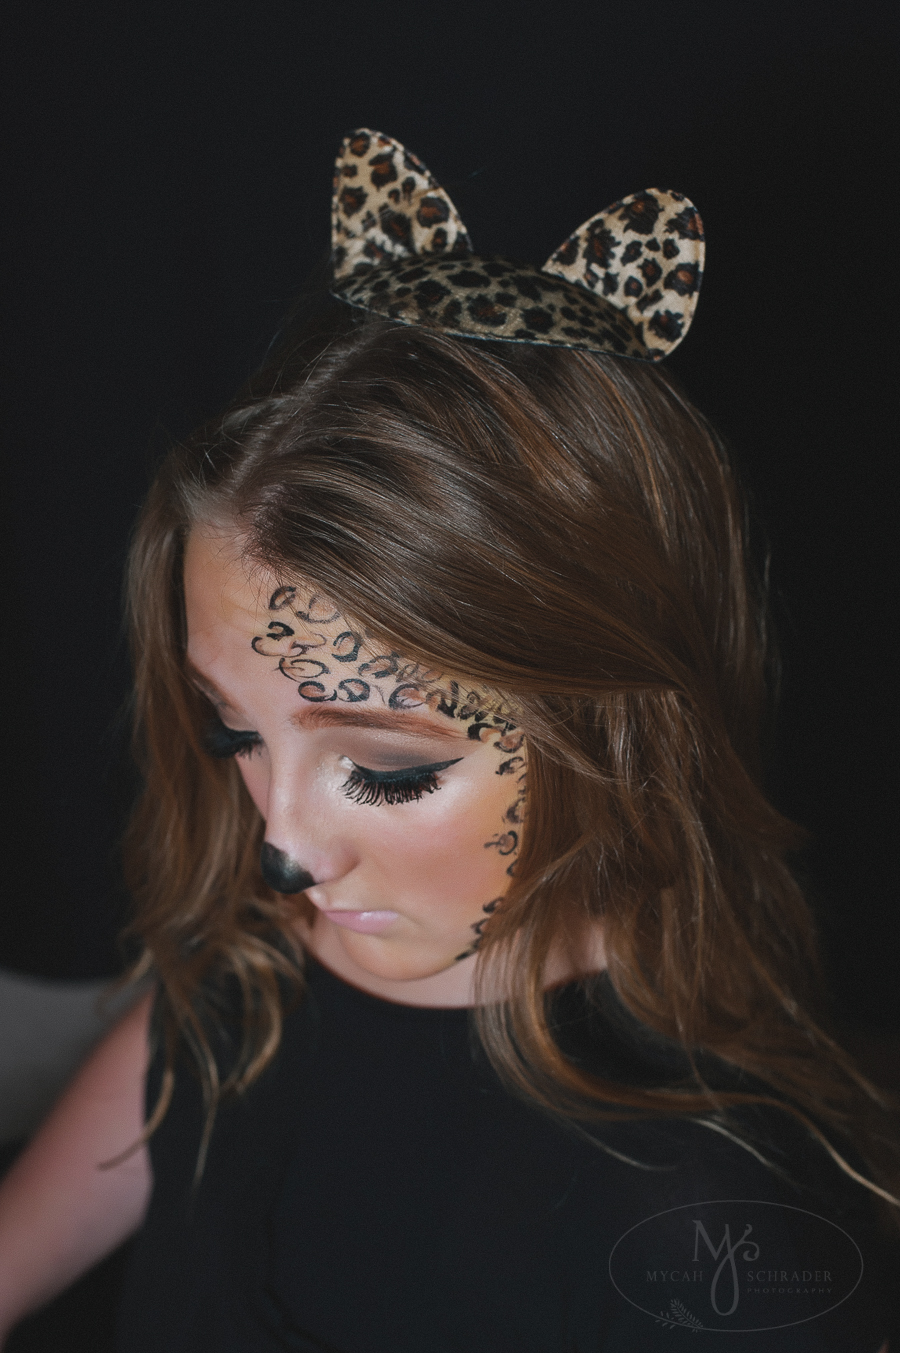 Miah - Cheetah outfit 11.4.2014-9727-2. Creative teen.  sc 1 st  Mycah Schrader Photography & Halloween cheetah costume | Mycah Schrader Photography